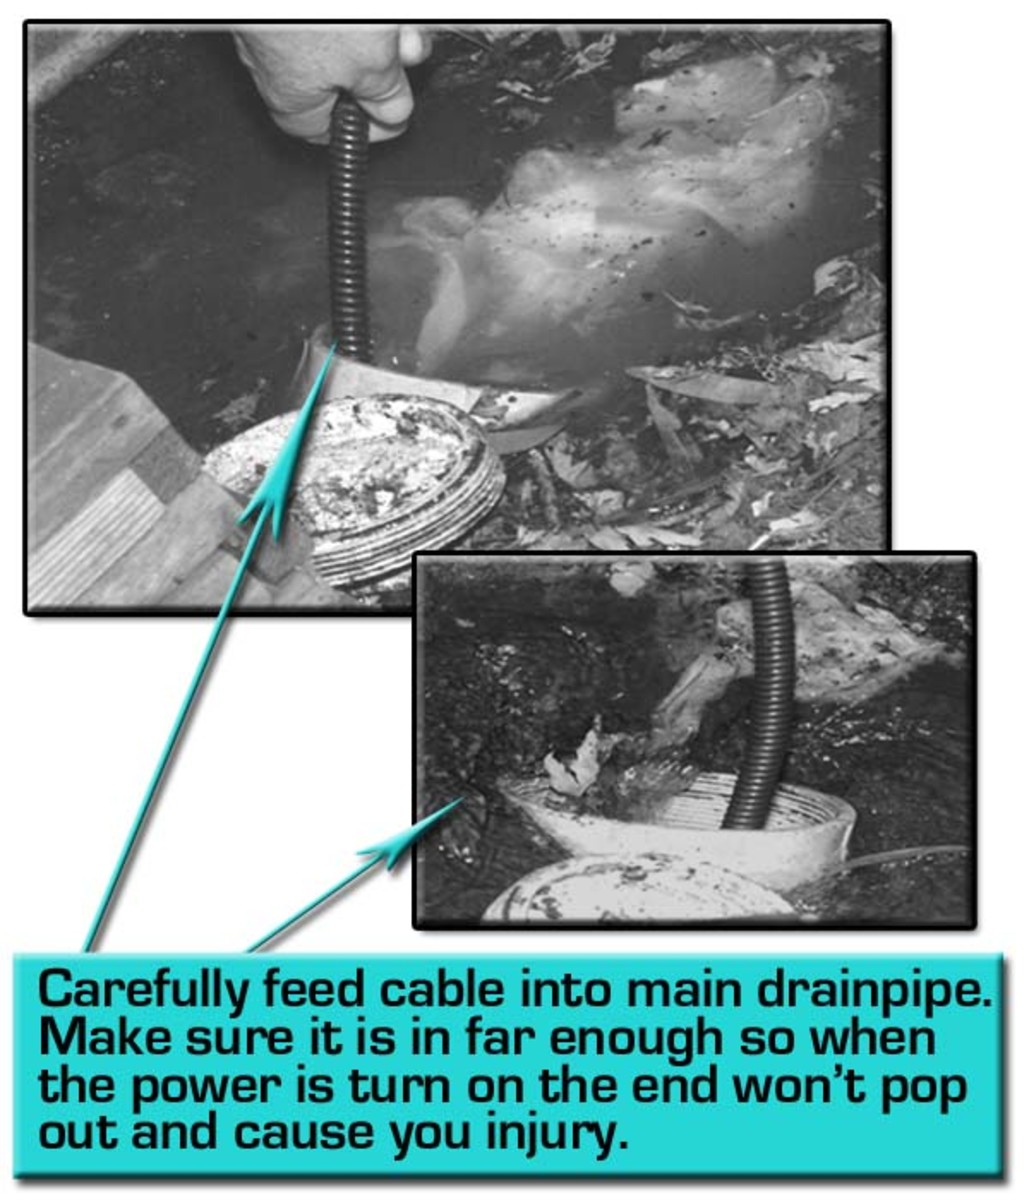 Carefully feed the auger cable into the drain.